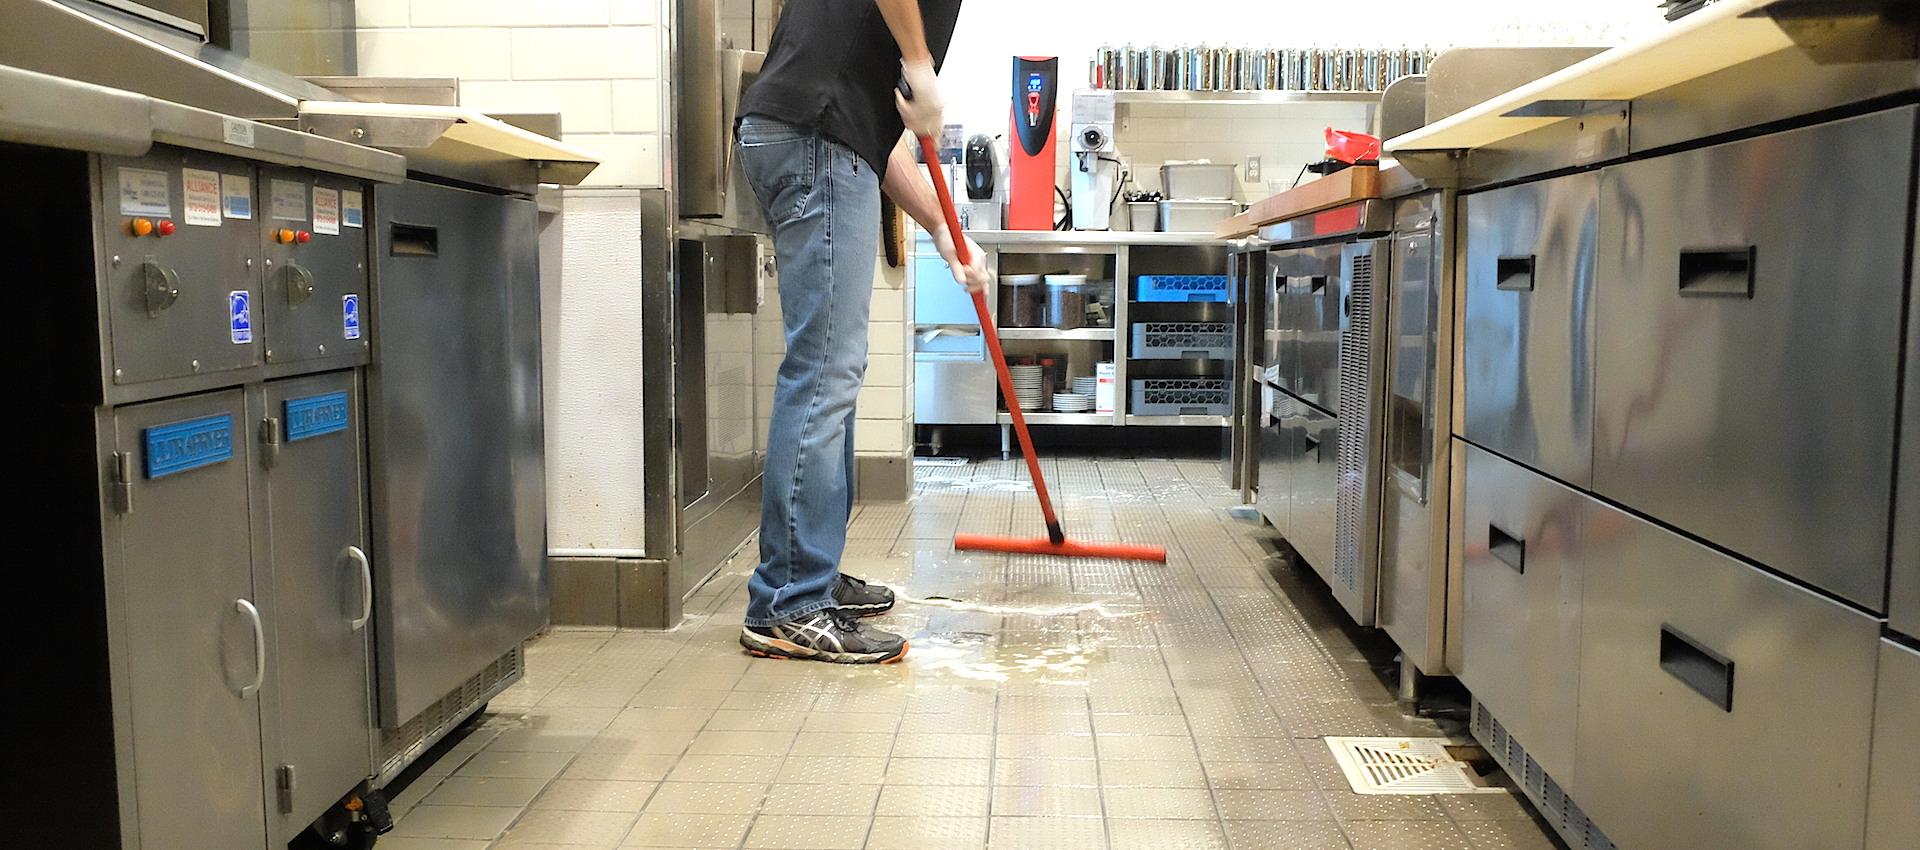 Commercial Kitchen Cleaning in Dallas, TX | (214) 838-2200